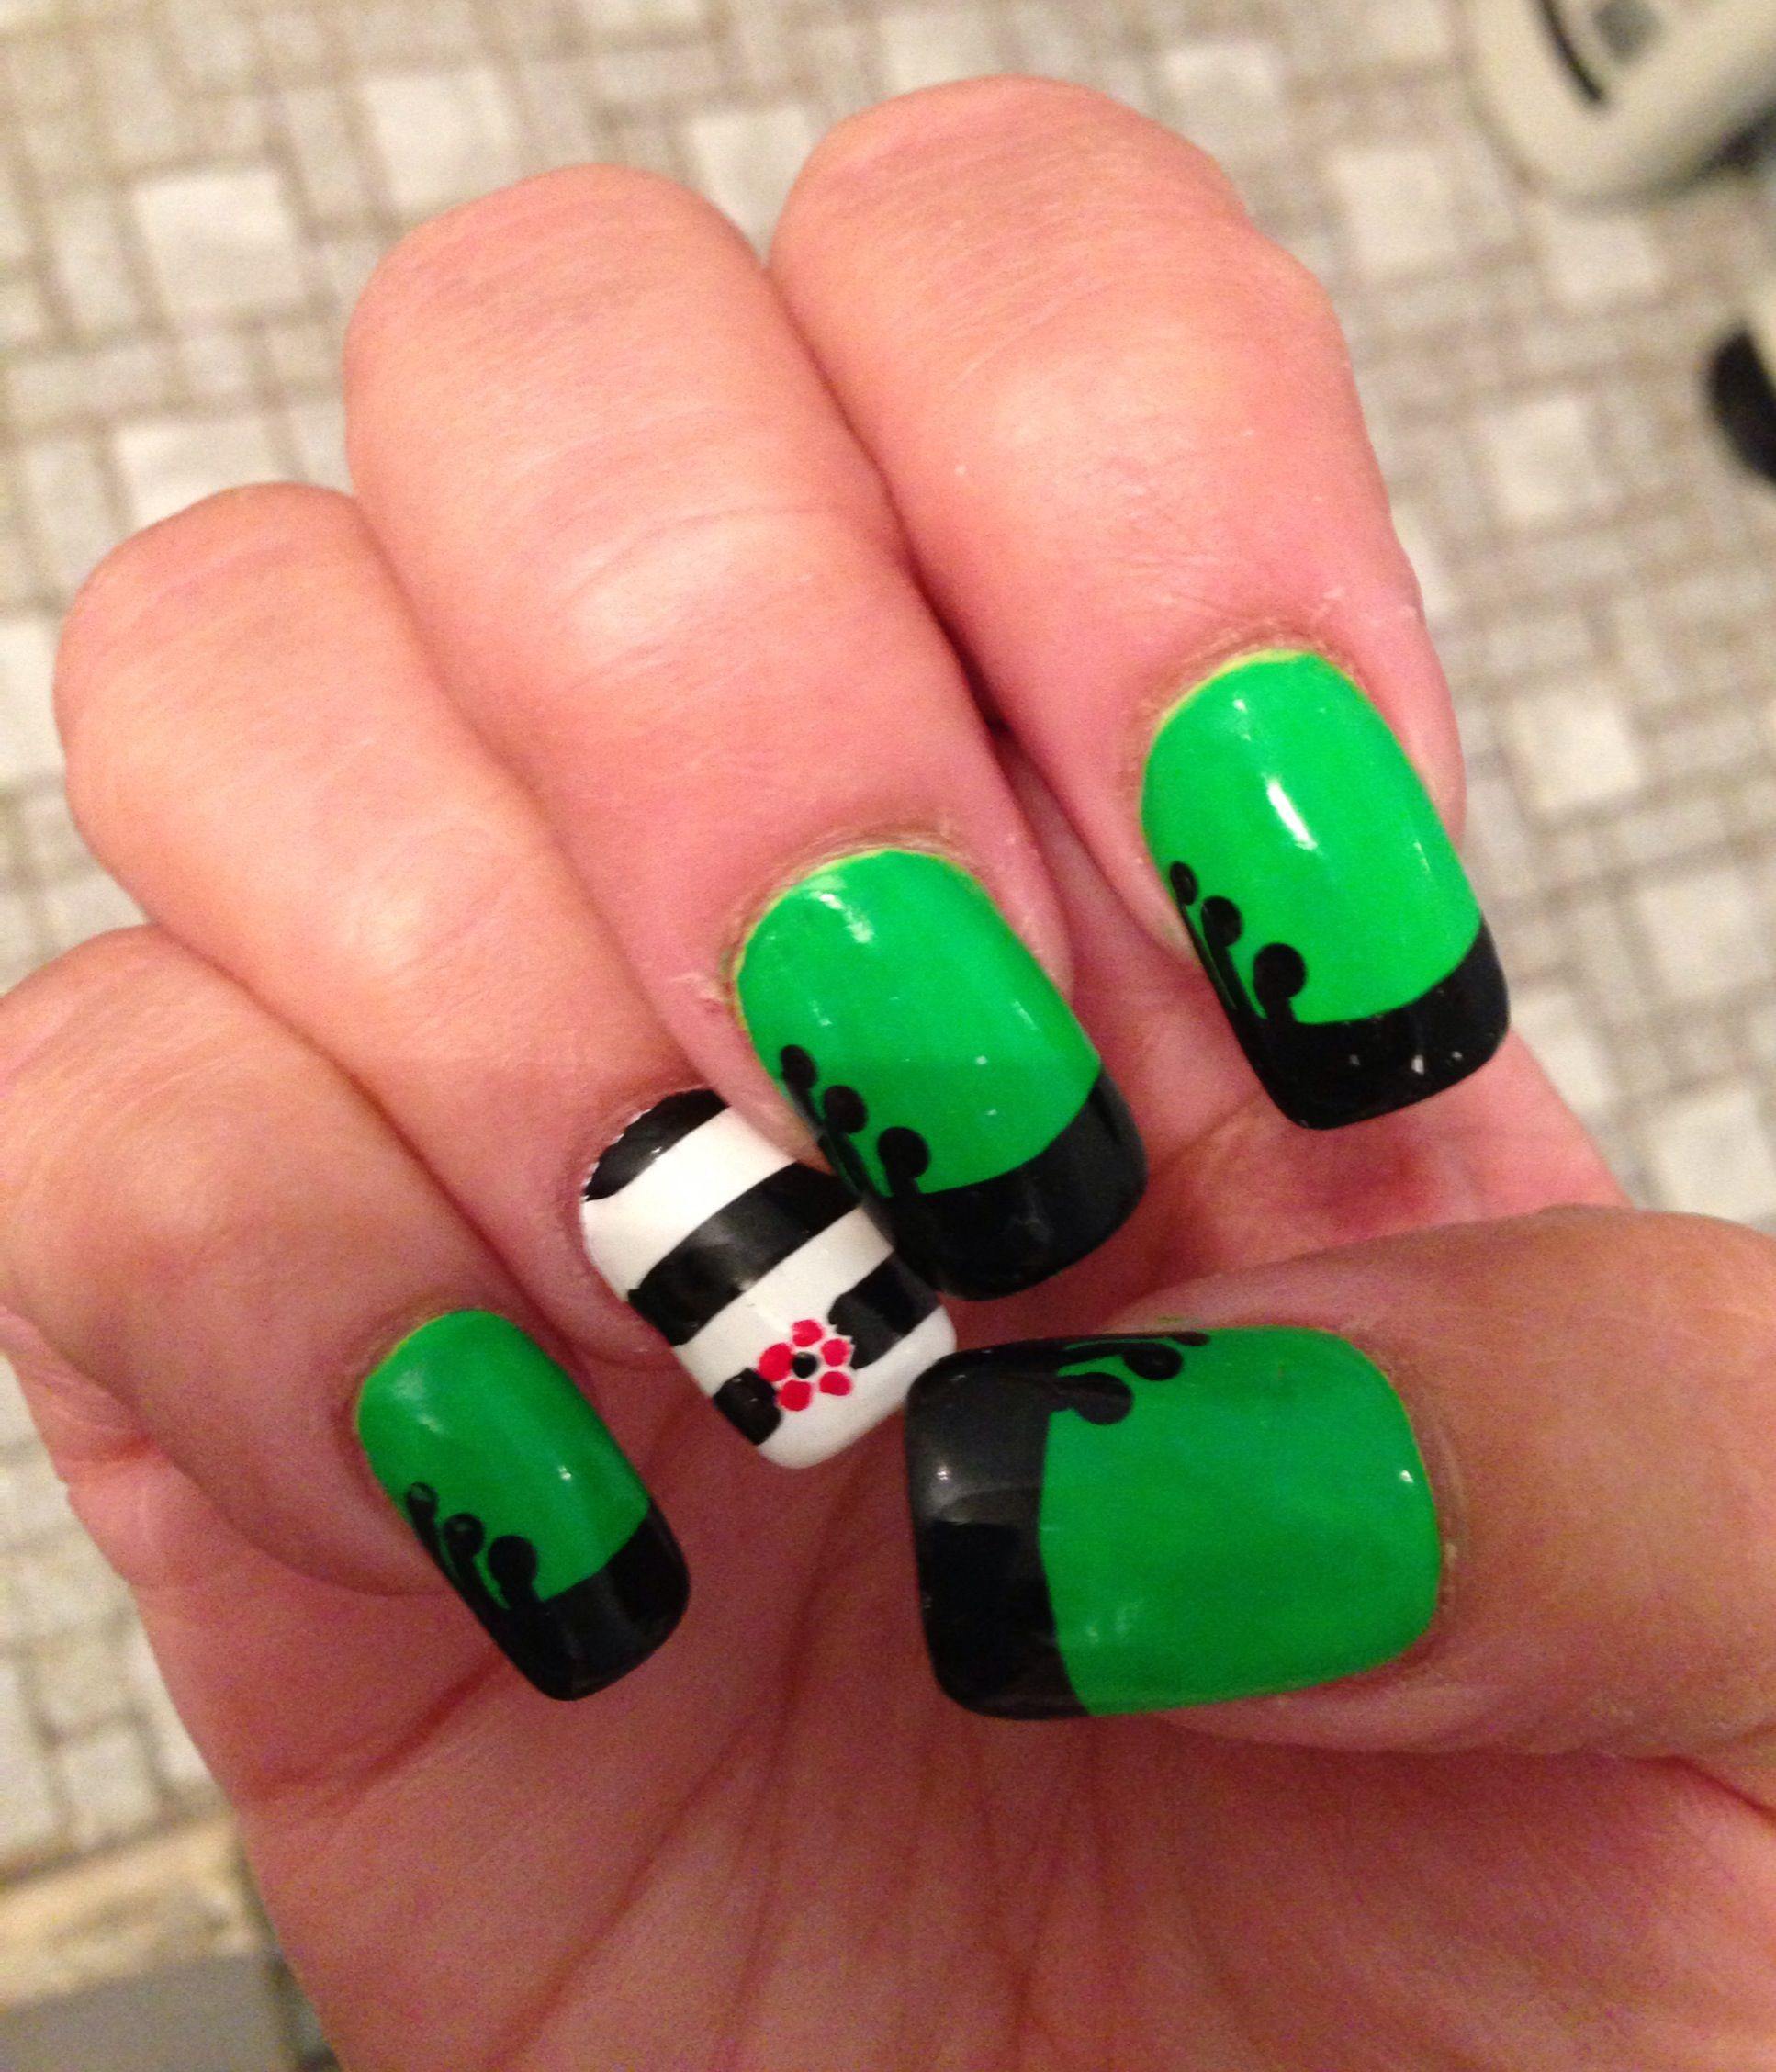 Wicked the musical nail art kl nail salon inc 31 avenue u wicked the musical nail art kl nail salon inc 31 avenue u brooklyn ny prinsesfo Images